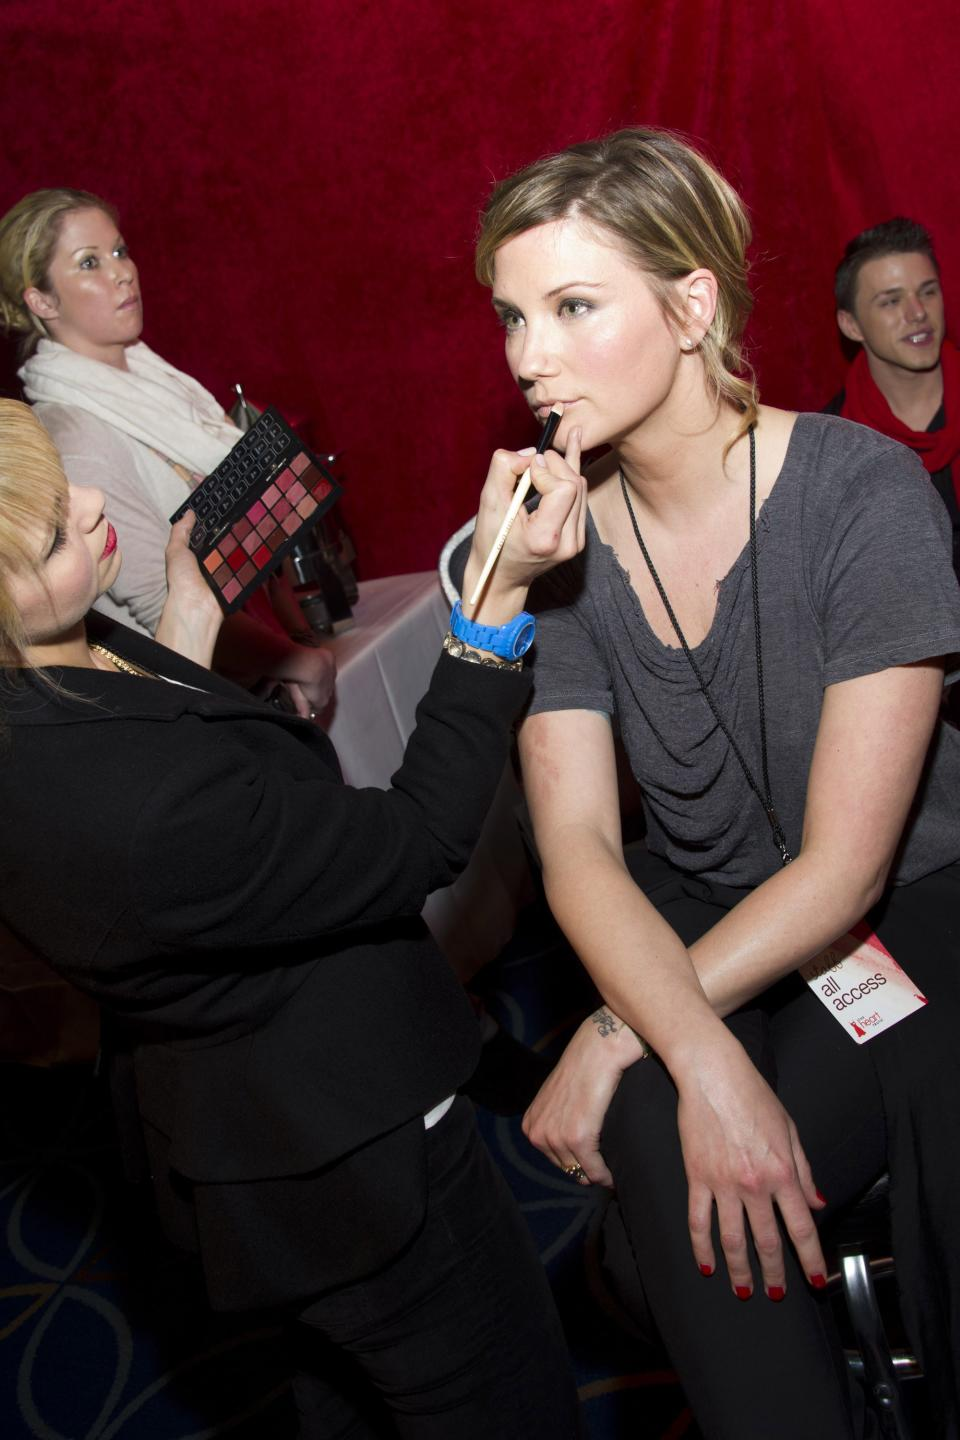 Singer Jennifer Nettles appears backstage at the Heart Truth's Red Dress Collection during Fashion Week in New York, Wednesday, Feb. 8, 2011. (AP Photo/Charles Sykes)